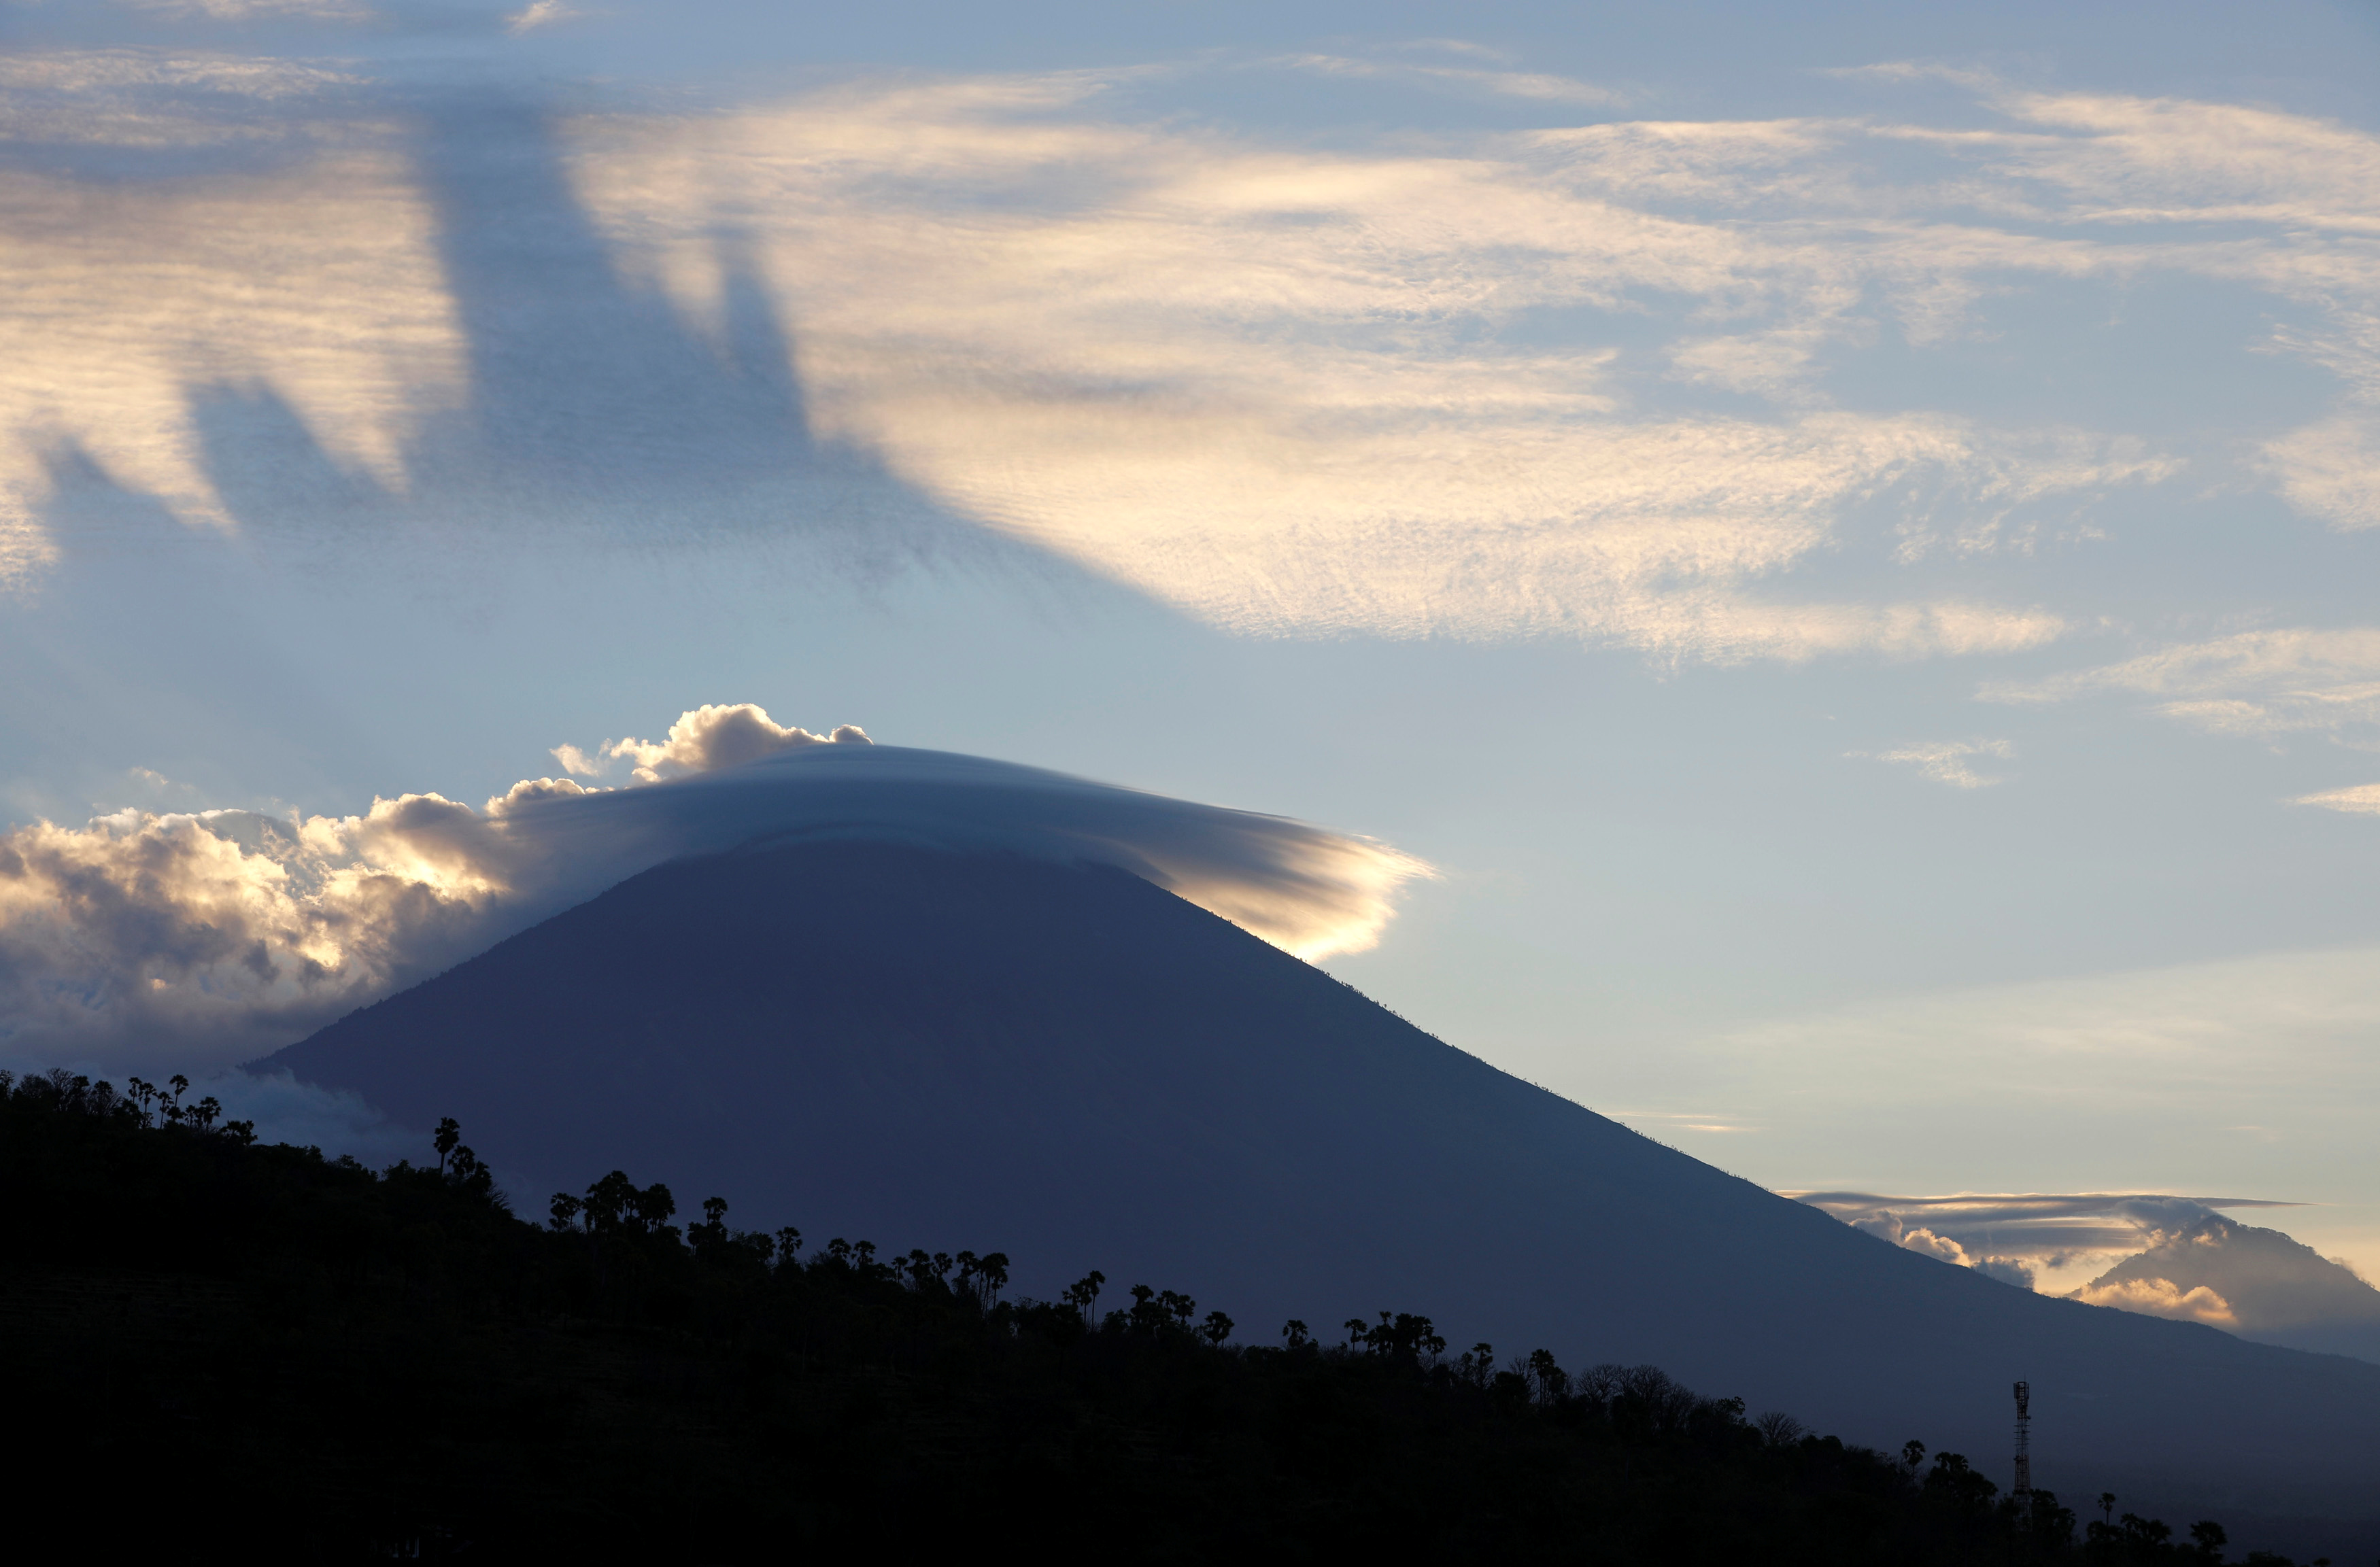 The sun sets behind Mount Agung, a volcano on the highest alert level, from Amed on the resort island of Bali, Indonesia September 25, 2017.